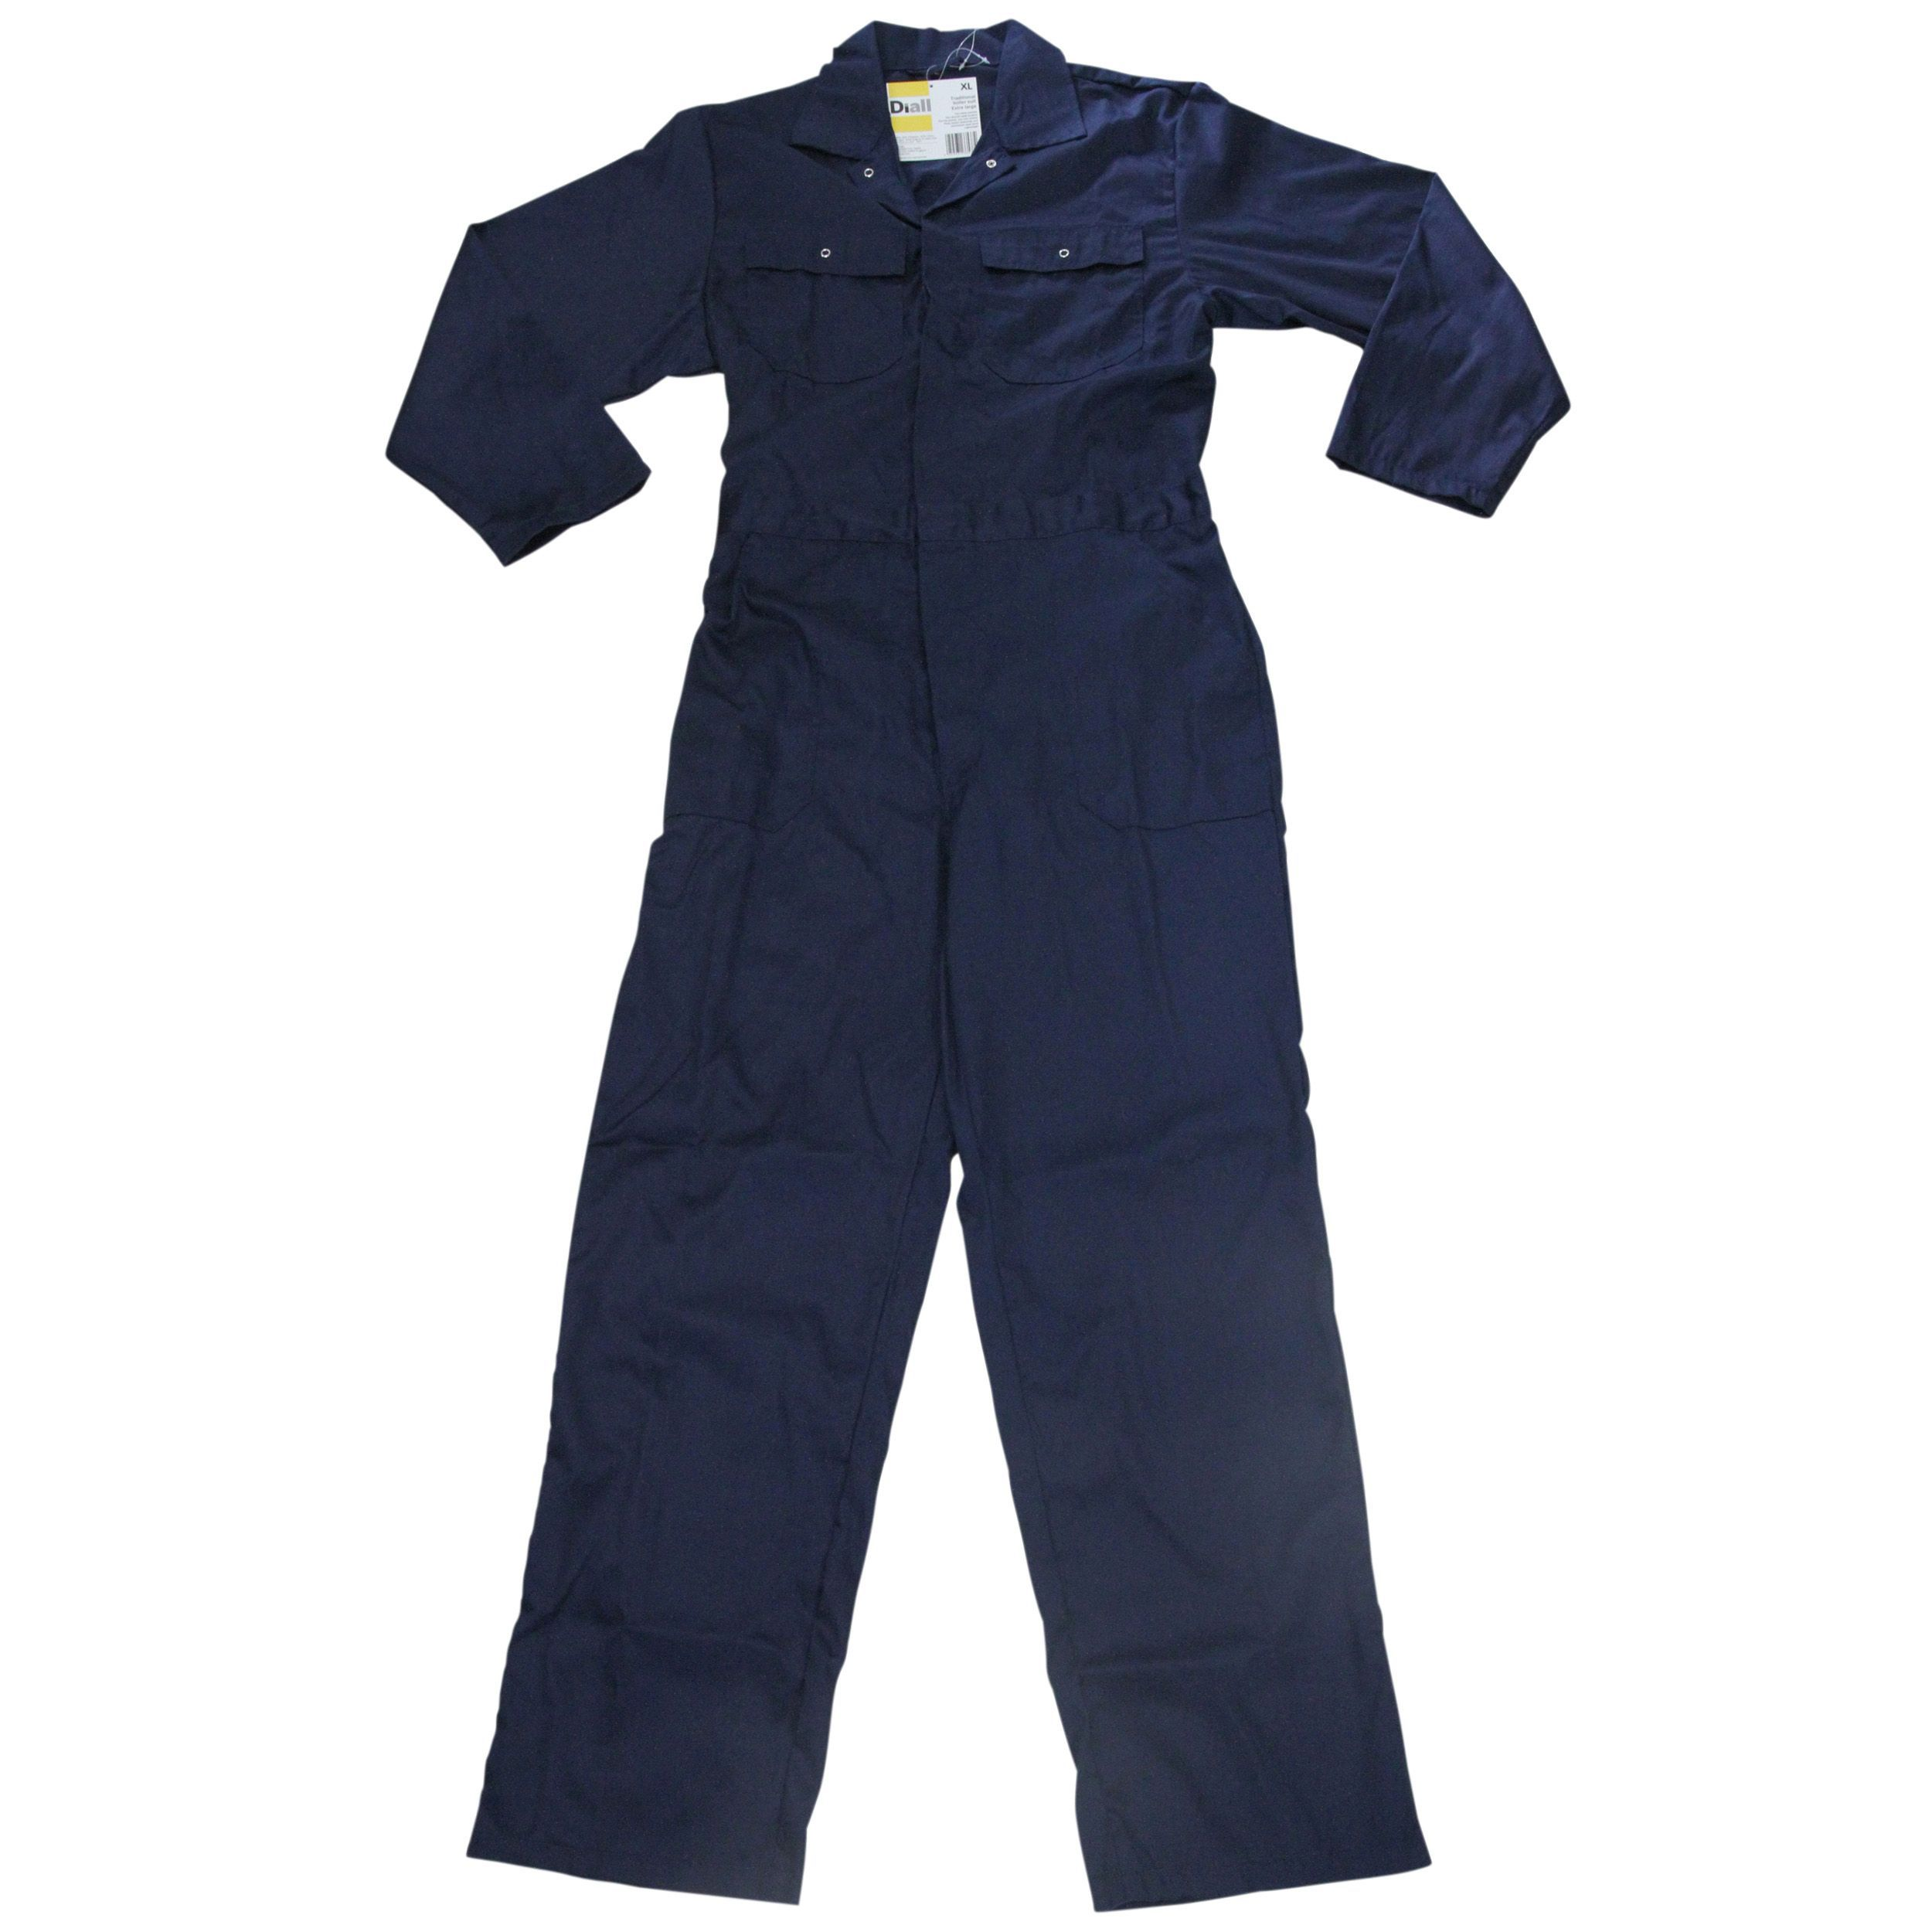 Diall Navy Boiler Suit Large Departments Tradepoint